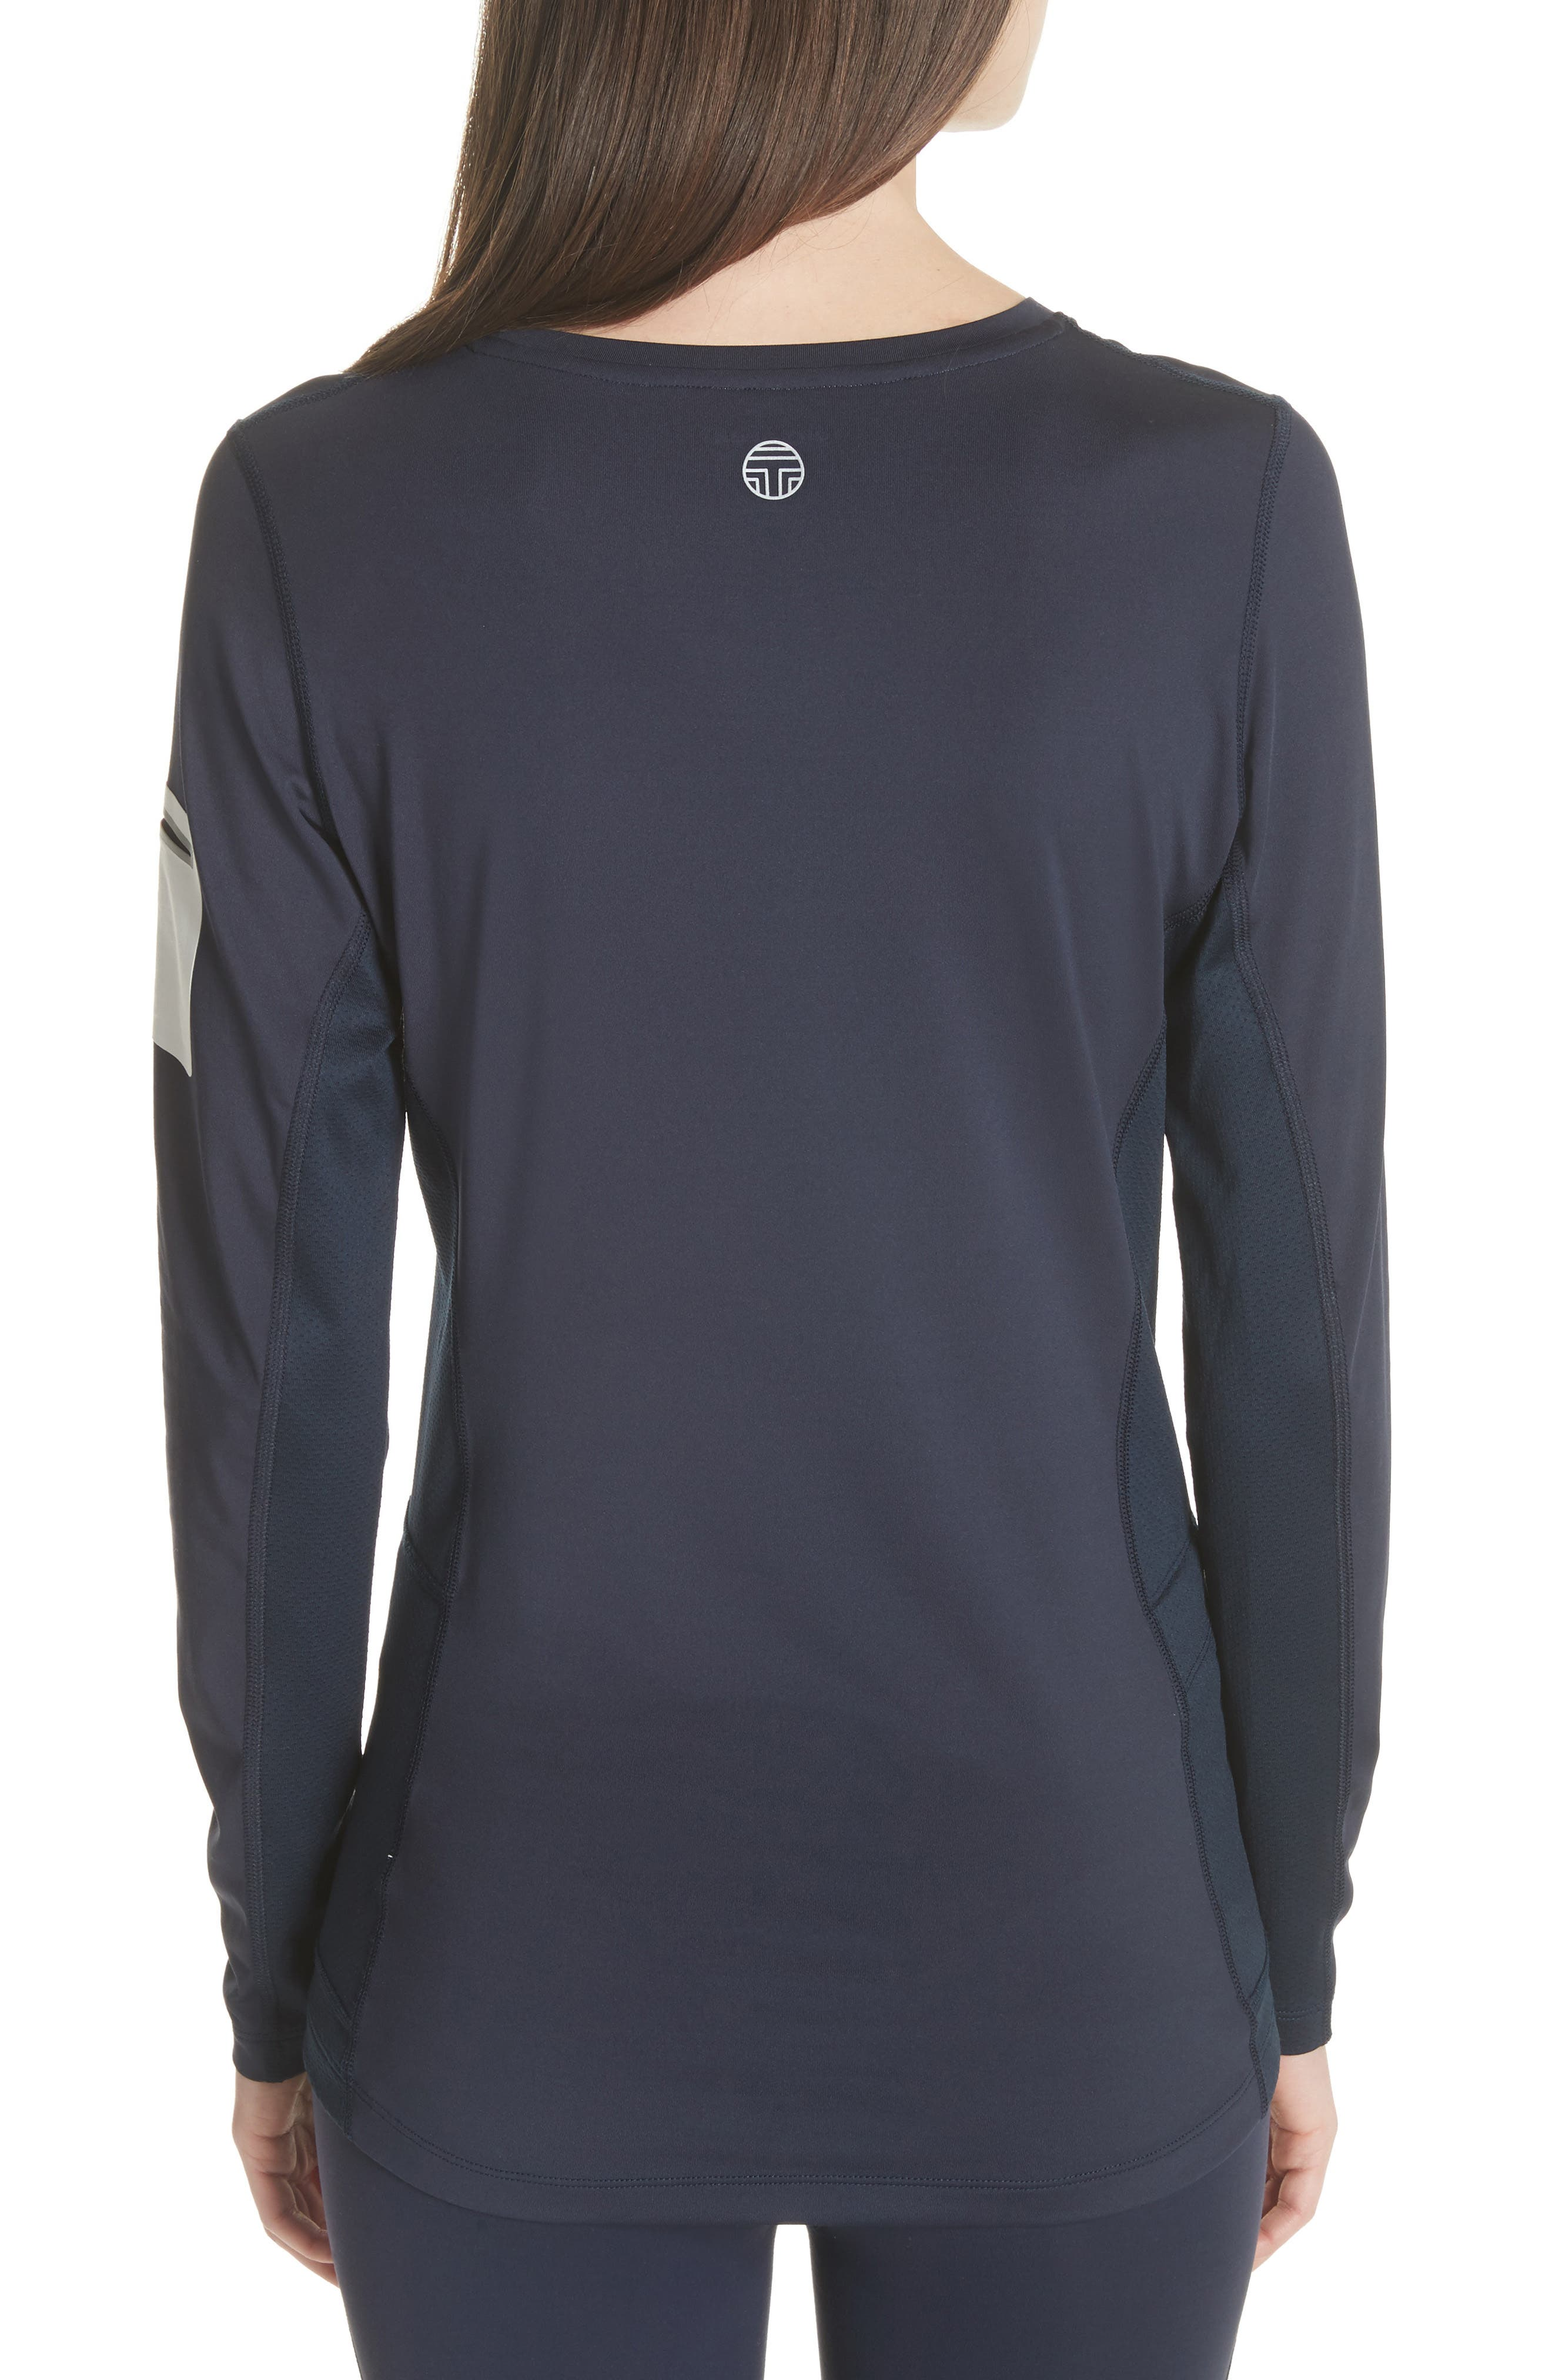 Graphic Performance Top,                             Alternate thumbnail 2, color,                             TORY NAVY